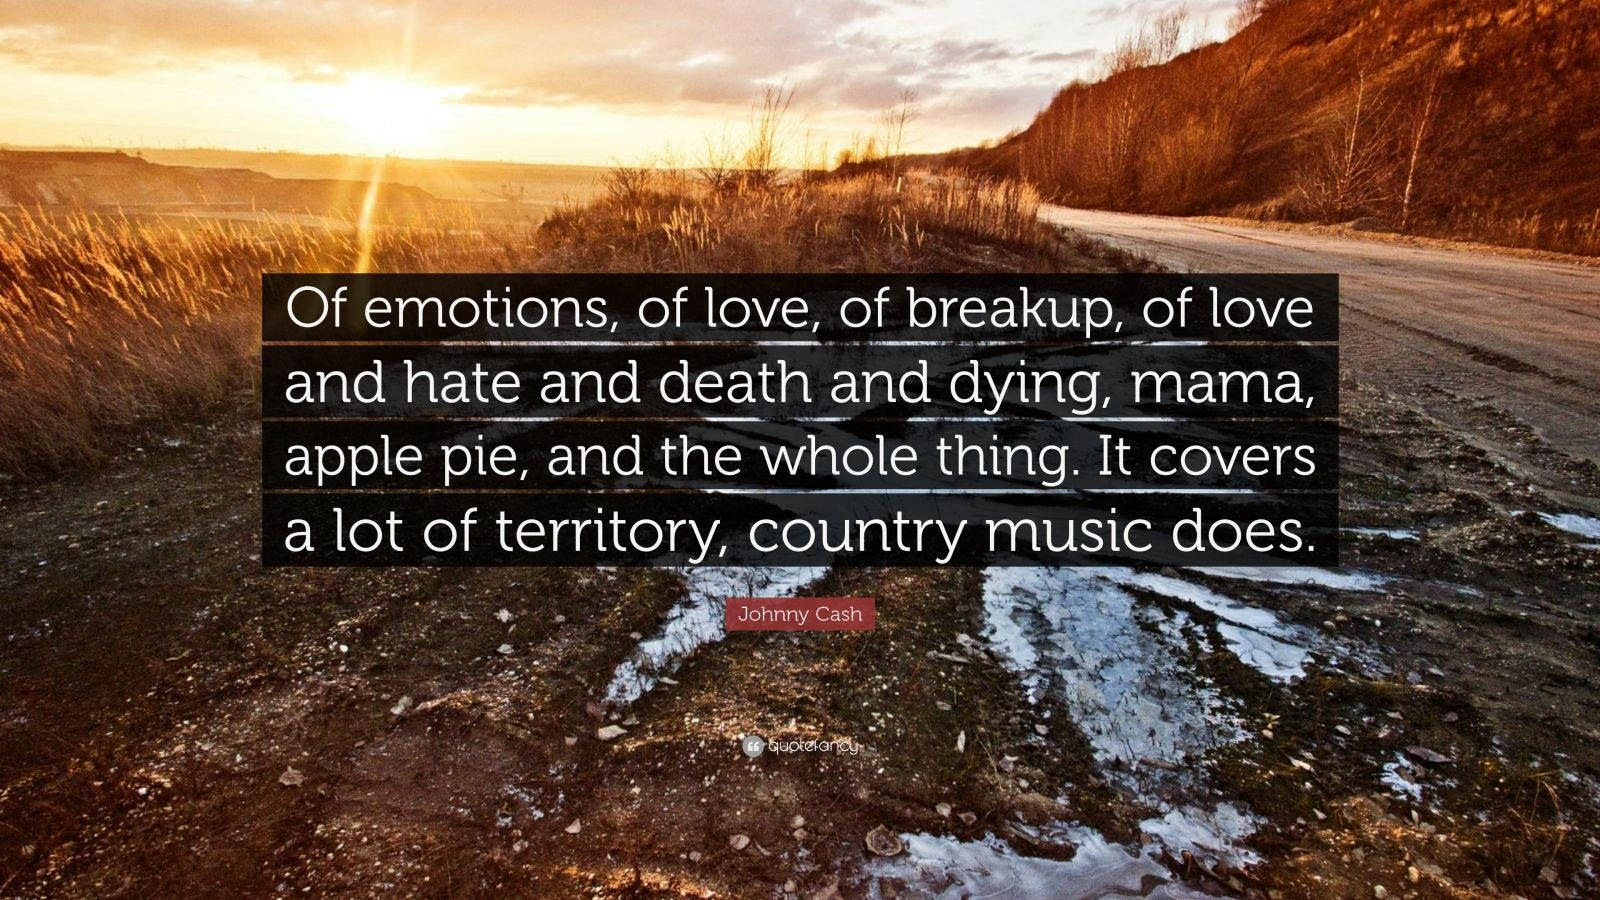 """Johnny Cash Quote: """"Of emotions, of love, of breakup, of love and hate and death and dying, mama, apple pie, and the whole thing. It covers a lot of territory, country music does."""""""